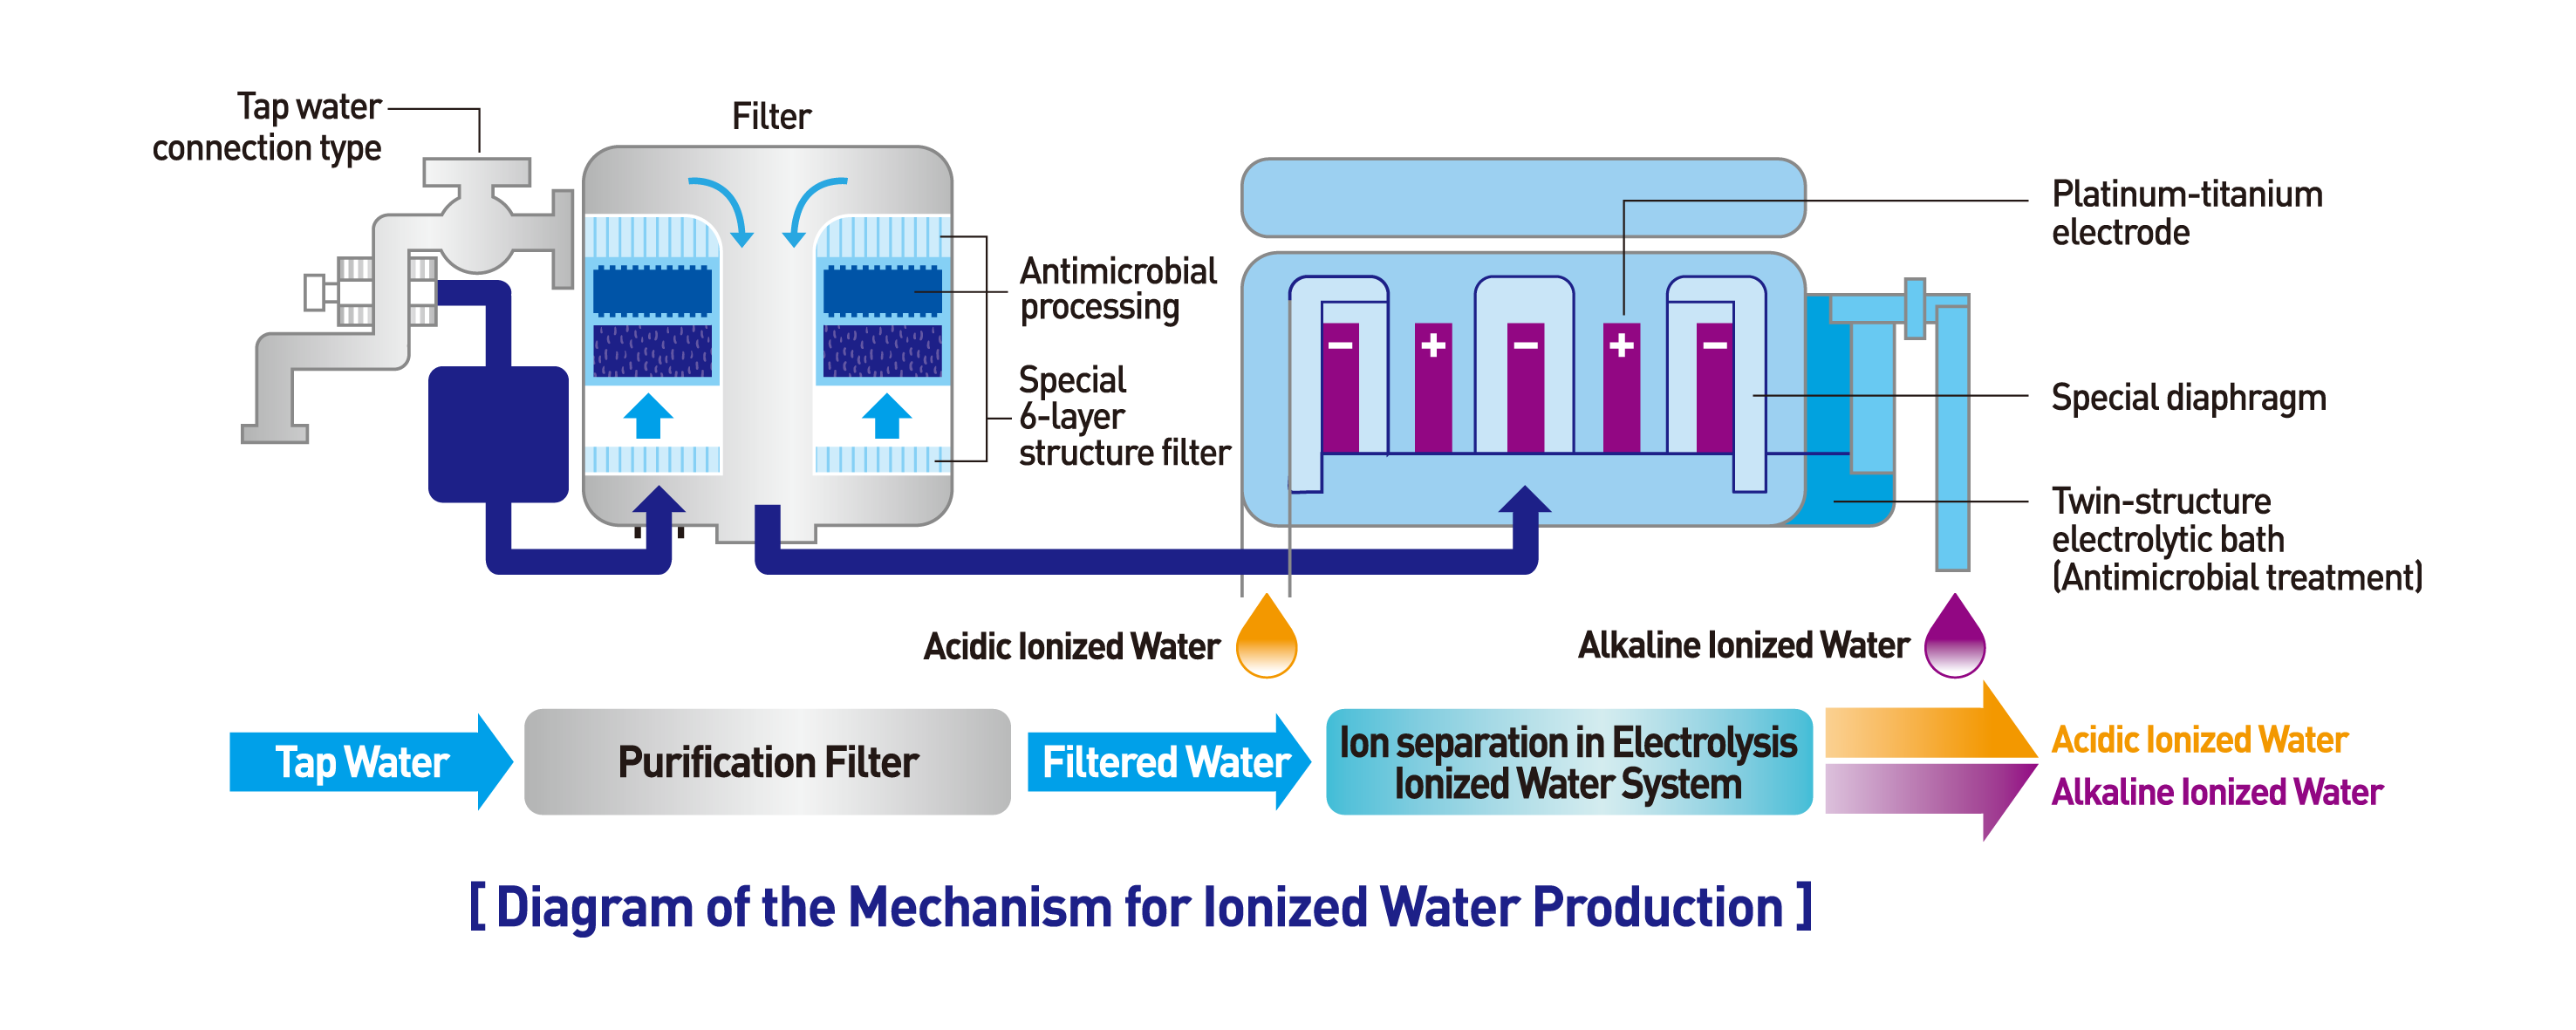 alkal life 7000sl™ water ionizer Waterfront Diagram